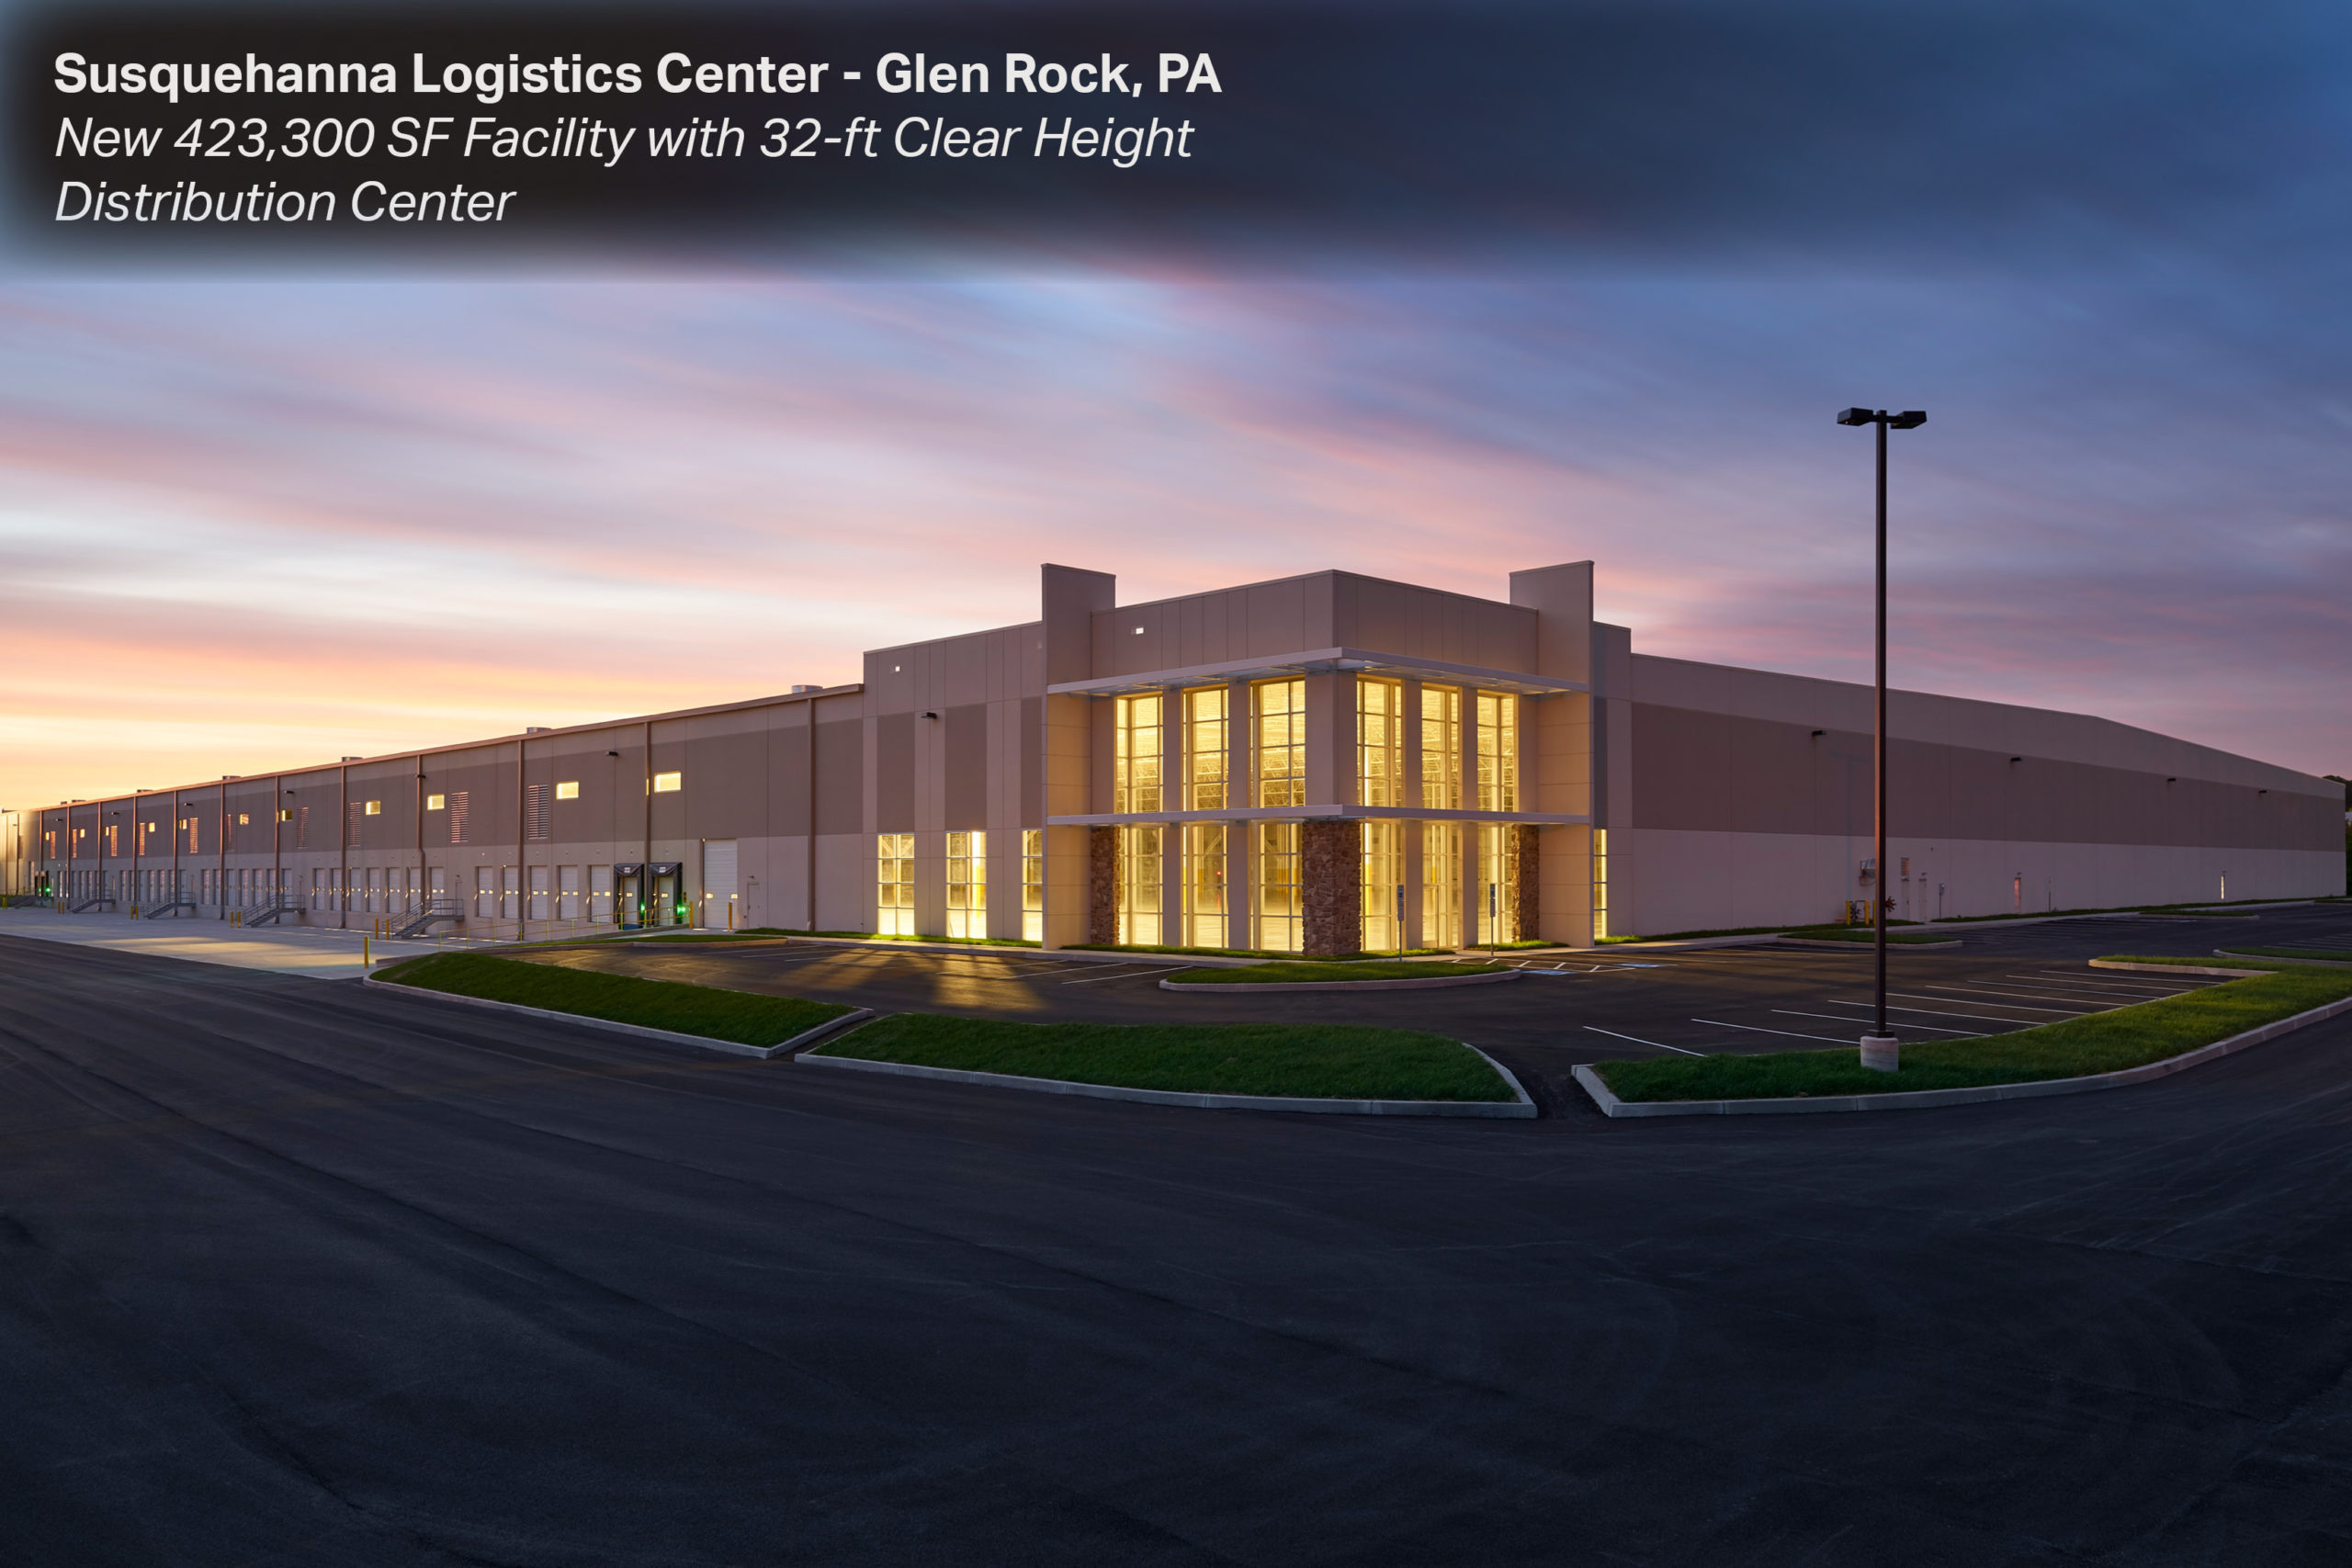 Warehouse/Distribution Centers